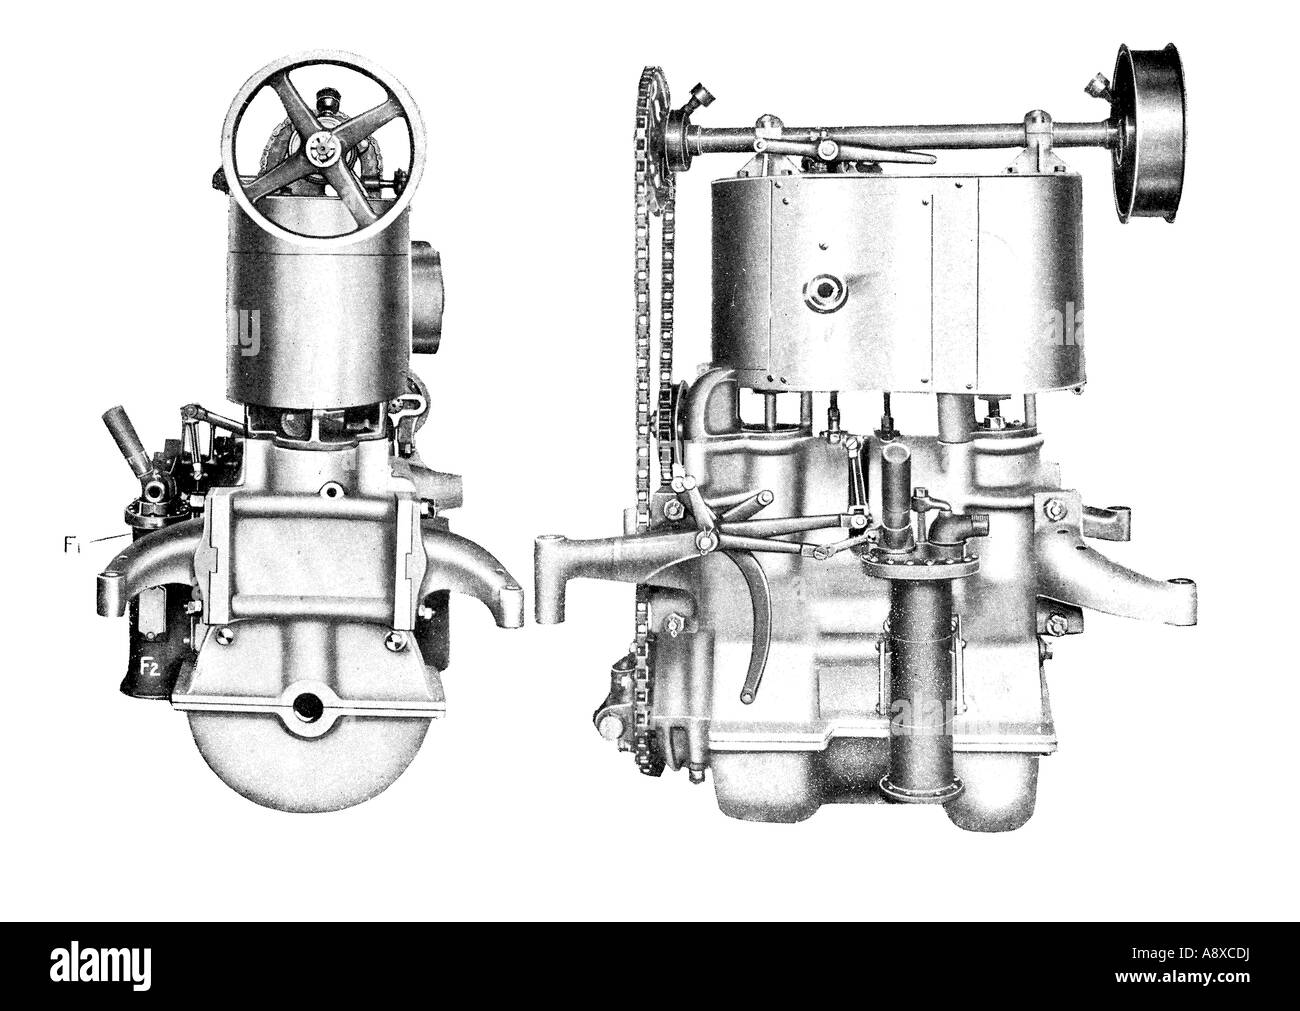 Car Engine Diagram Stock Photos Images Cylinder White 30 Horse Power Steam Image